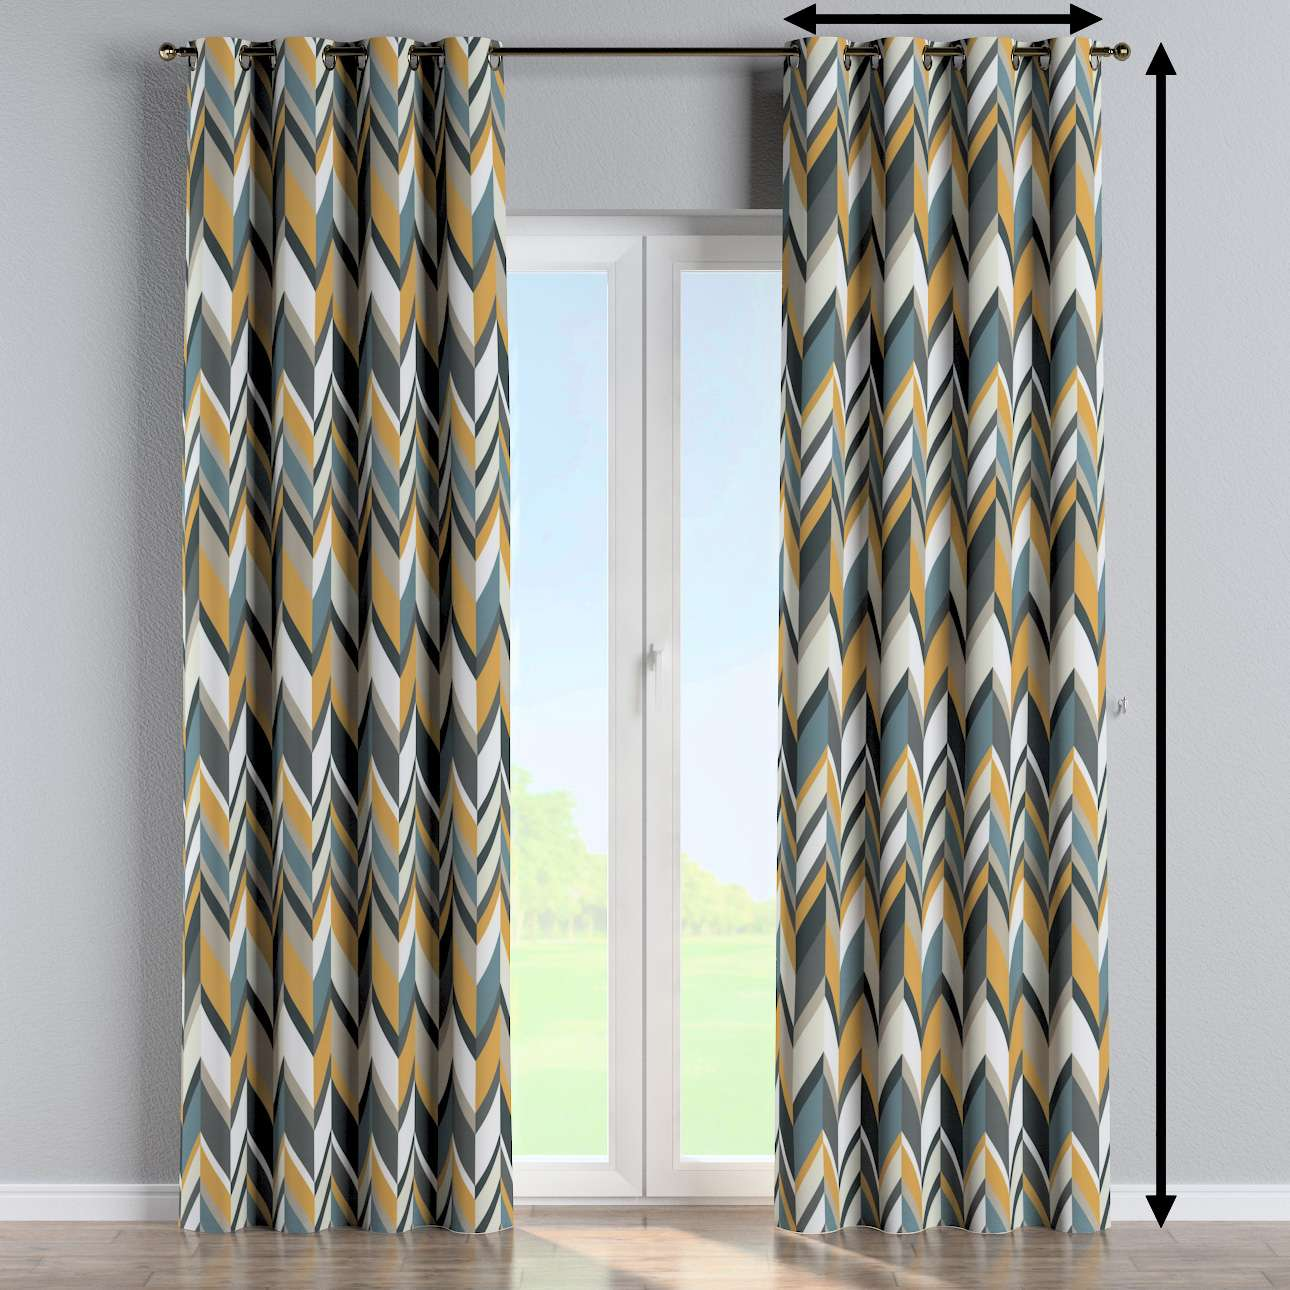 Eyelet curtain in collection Vintage 70's, fabric: 143-56